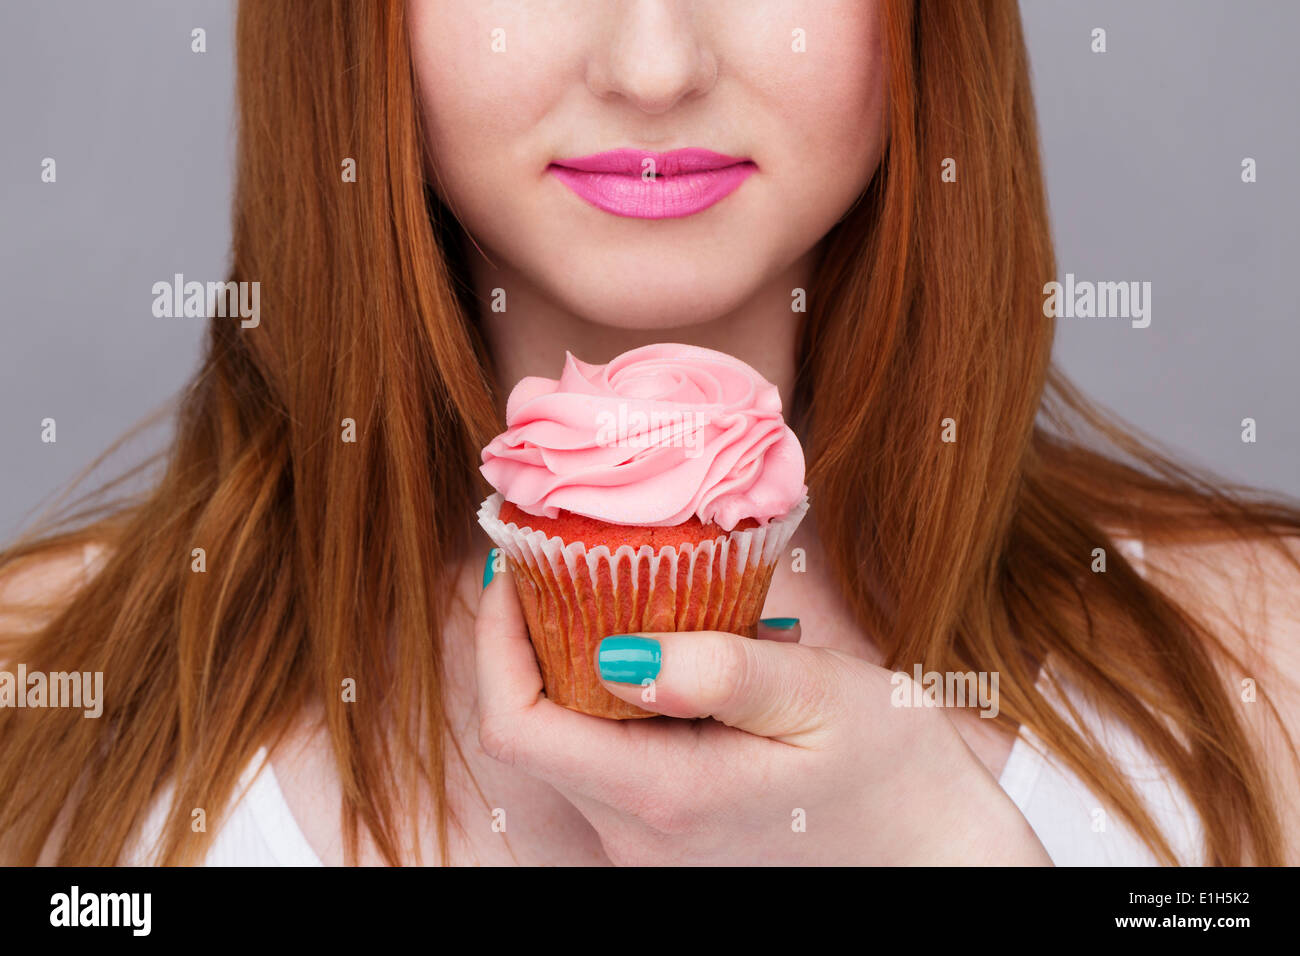 Cropped image of young woman holding cupcake - Stock Image